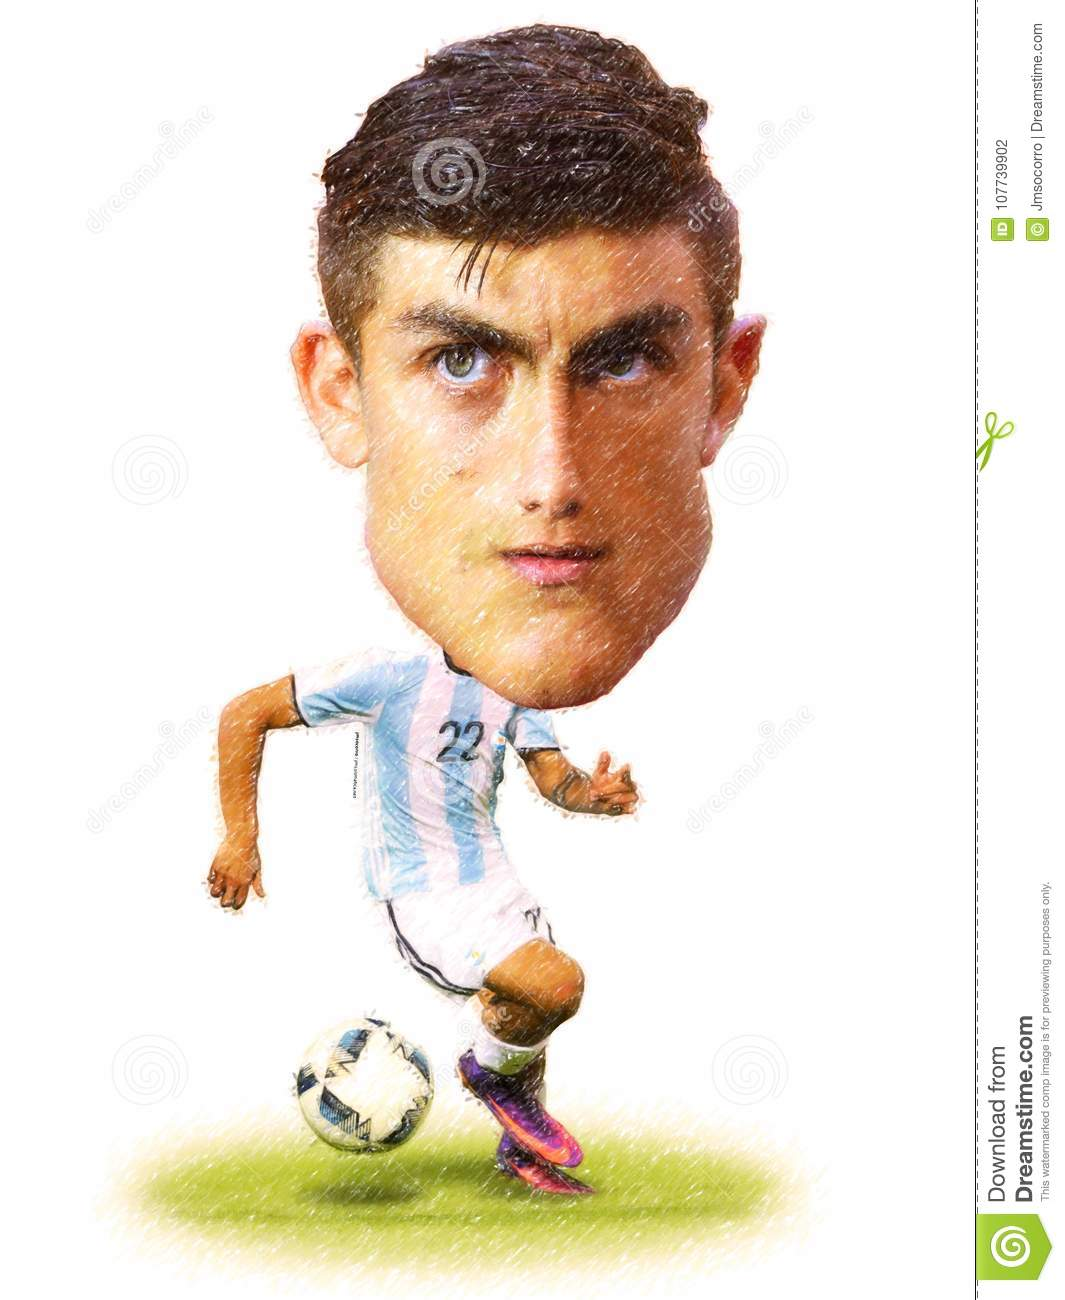 Cartoon of paulo dybala football player of argentina national team